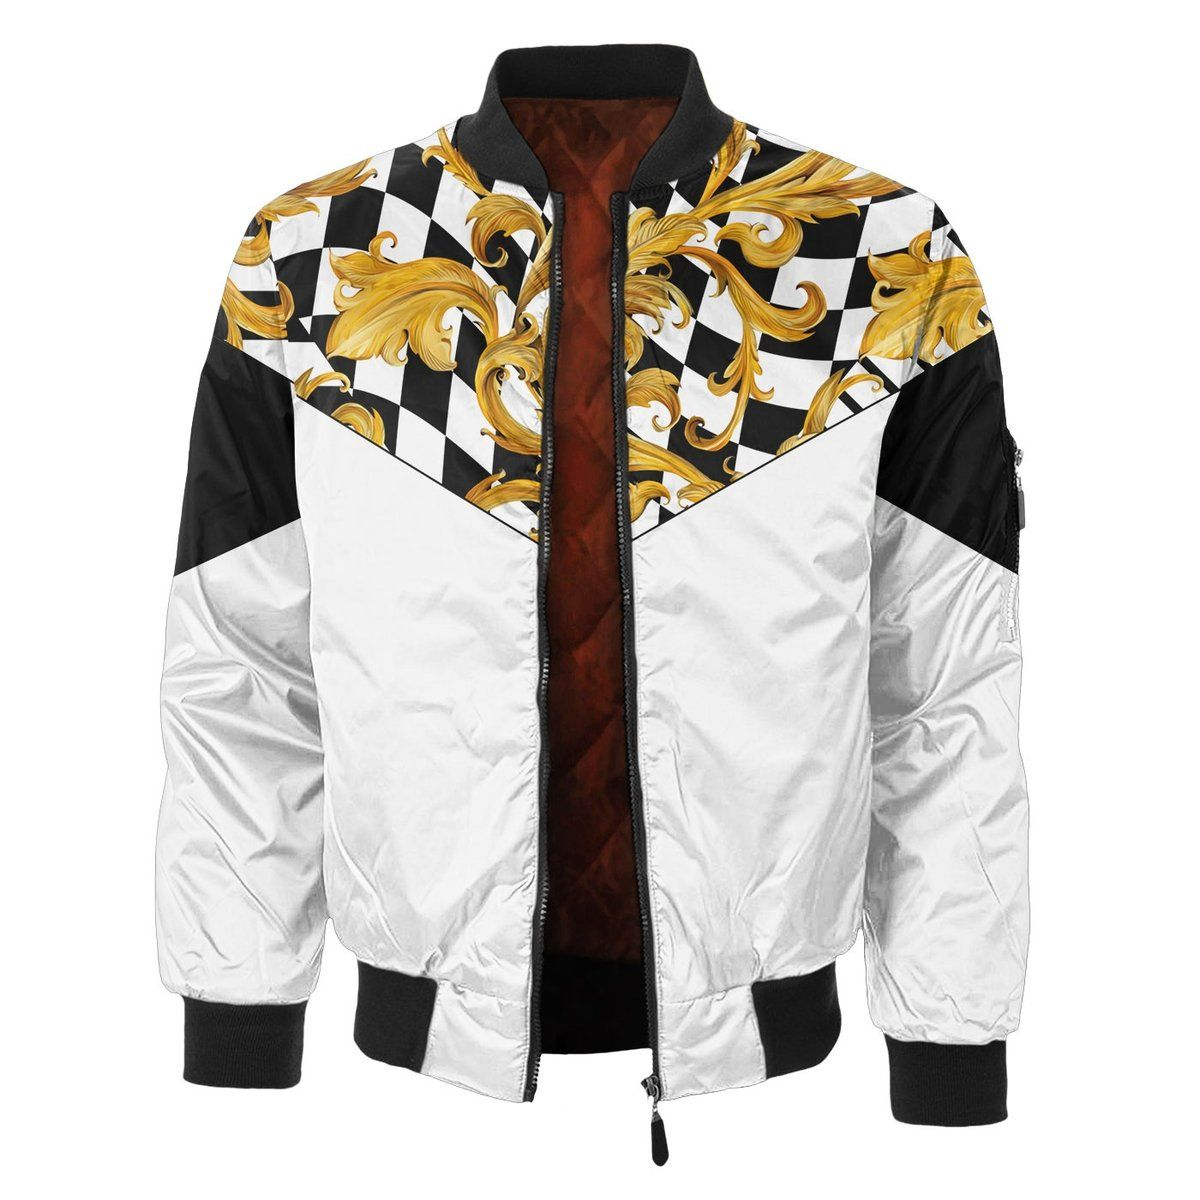 Add A Bold New Look To Your Wardrobe With Our Golden Life Bomber Jacket Handcrafted For Fully Aligned Edge To Edge Jackets Bomber Jacket Classic Bomber Jacket [ 1200 x 1200 Pixel ]